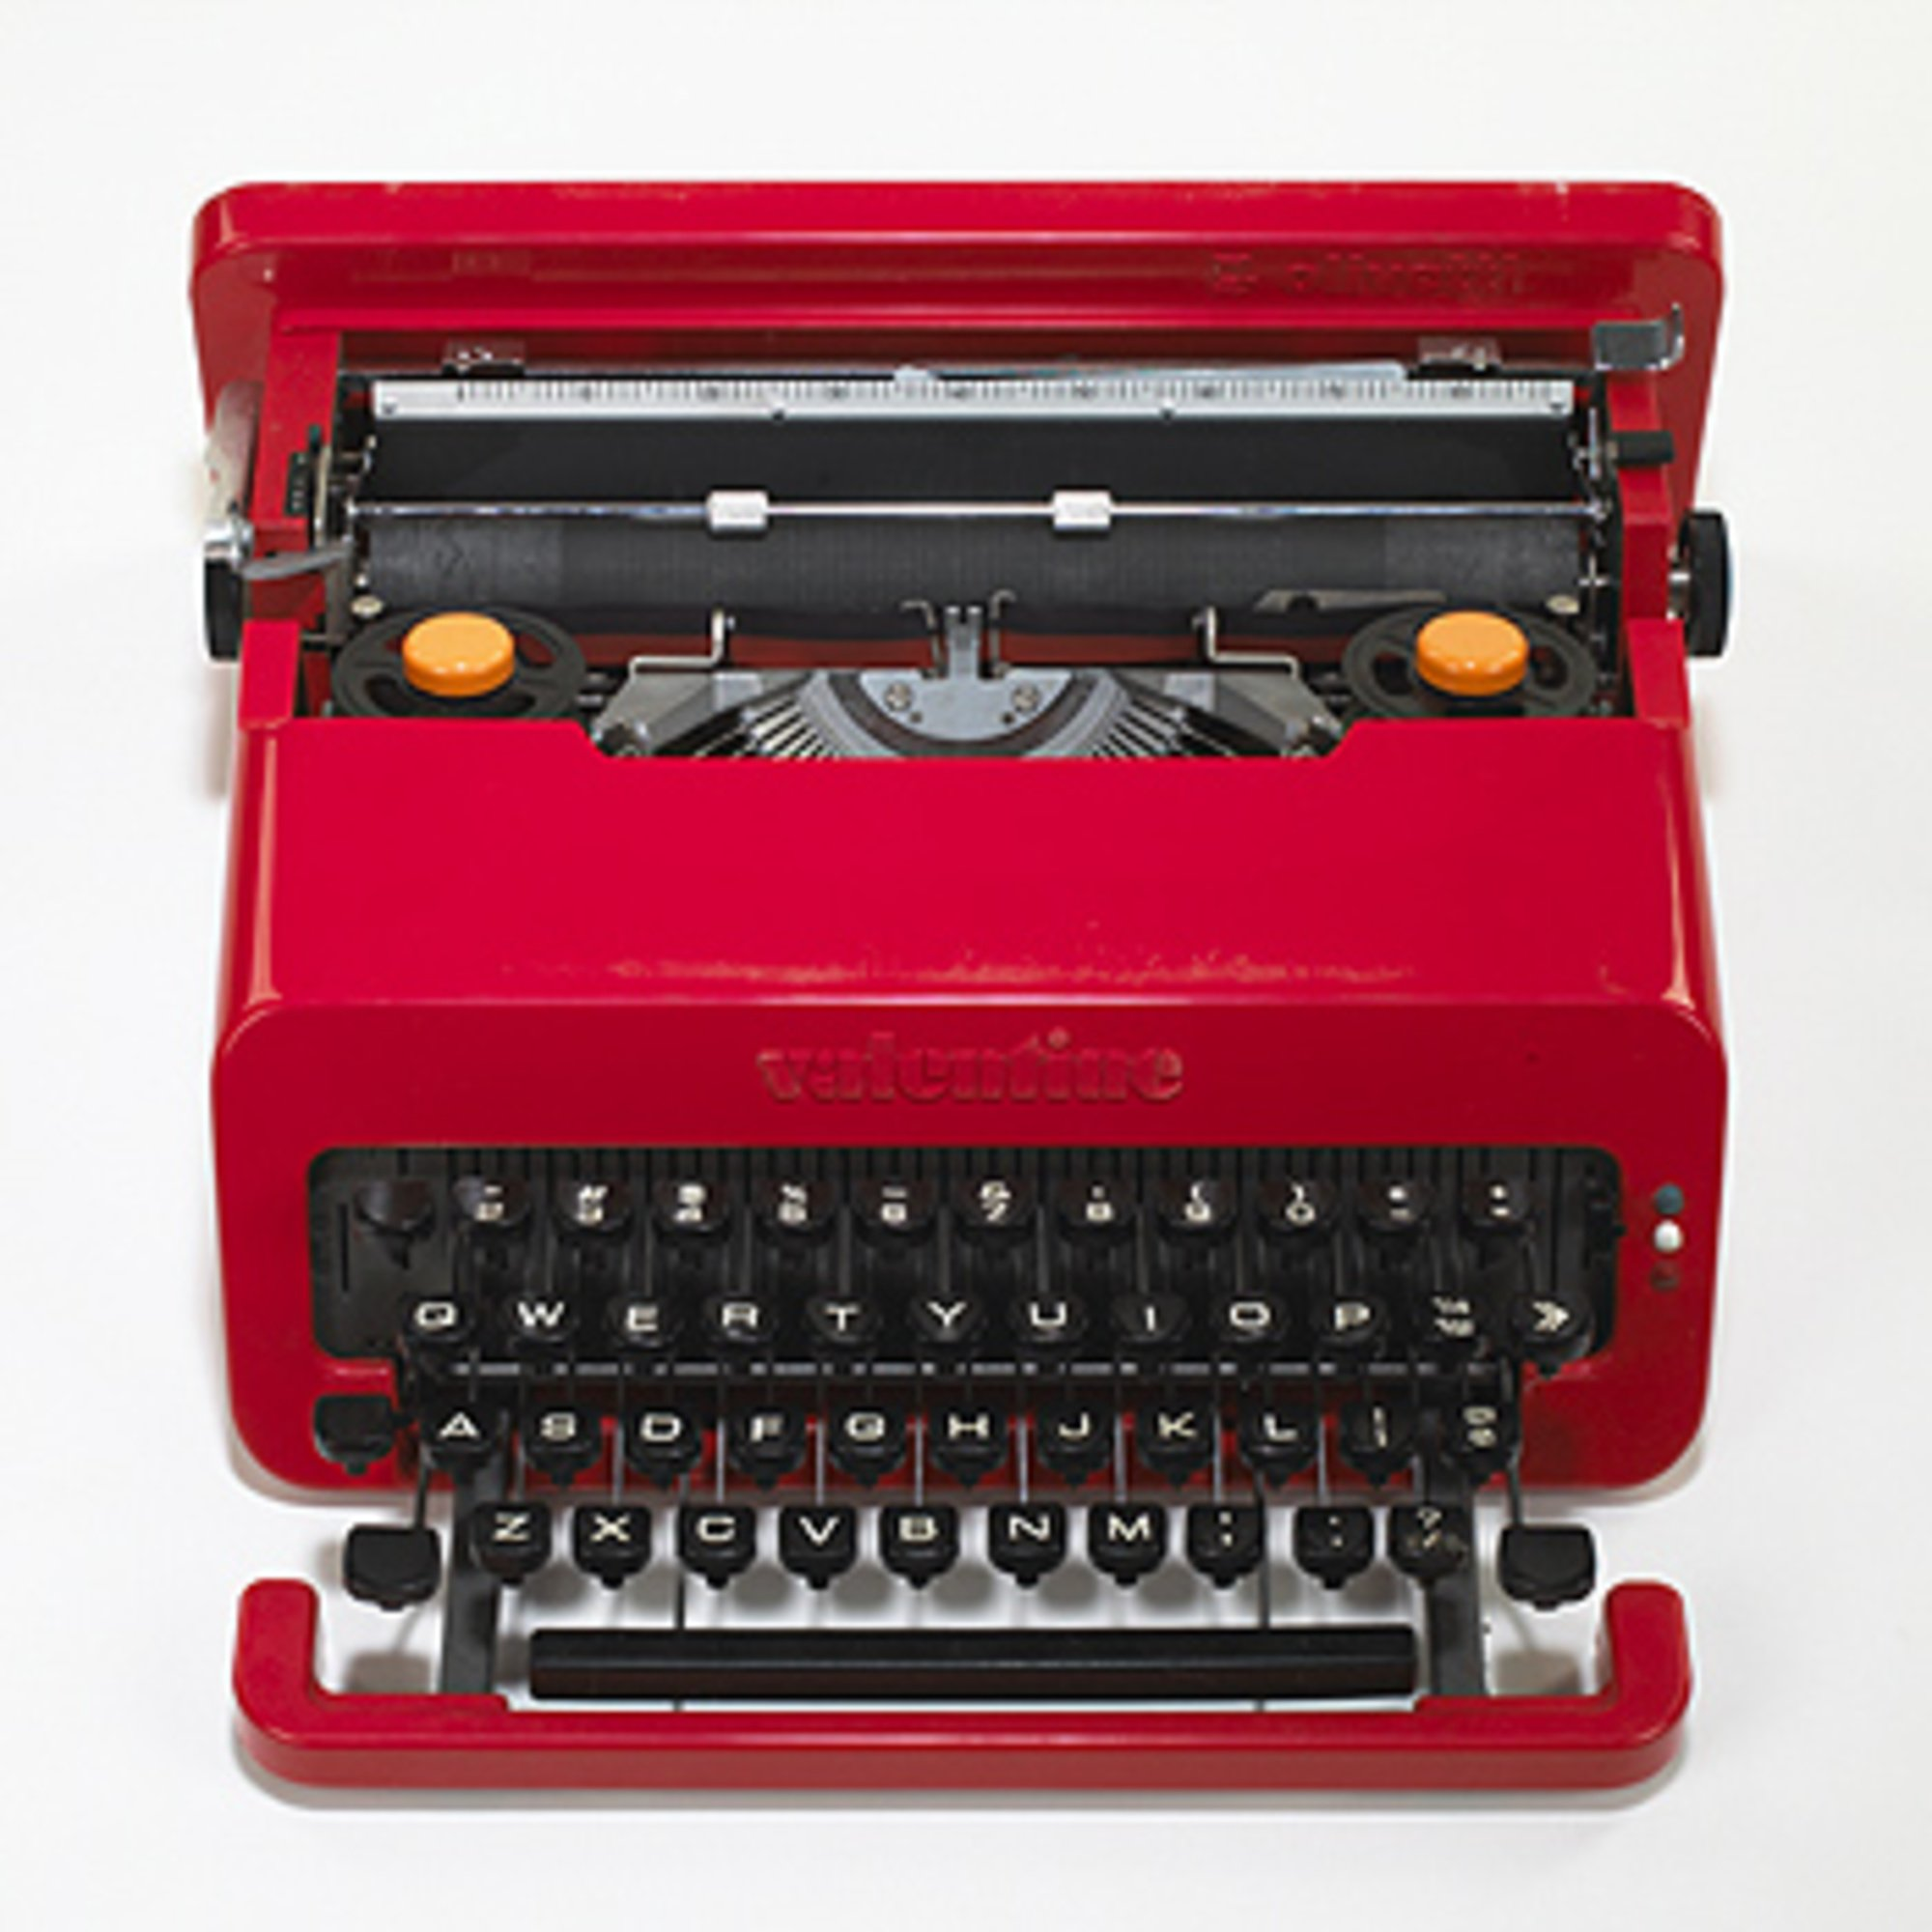 Olivetti Valentine Typewriter by Ettore Sottsass at design and art gallery Casati Gallery